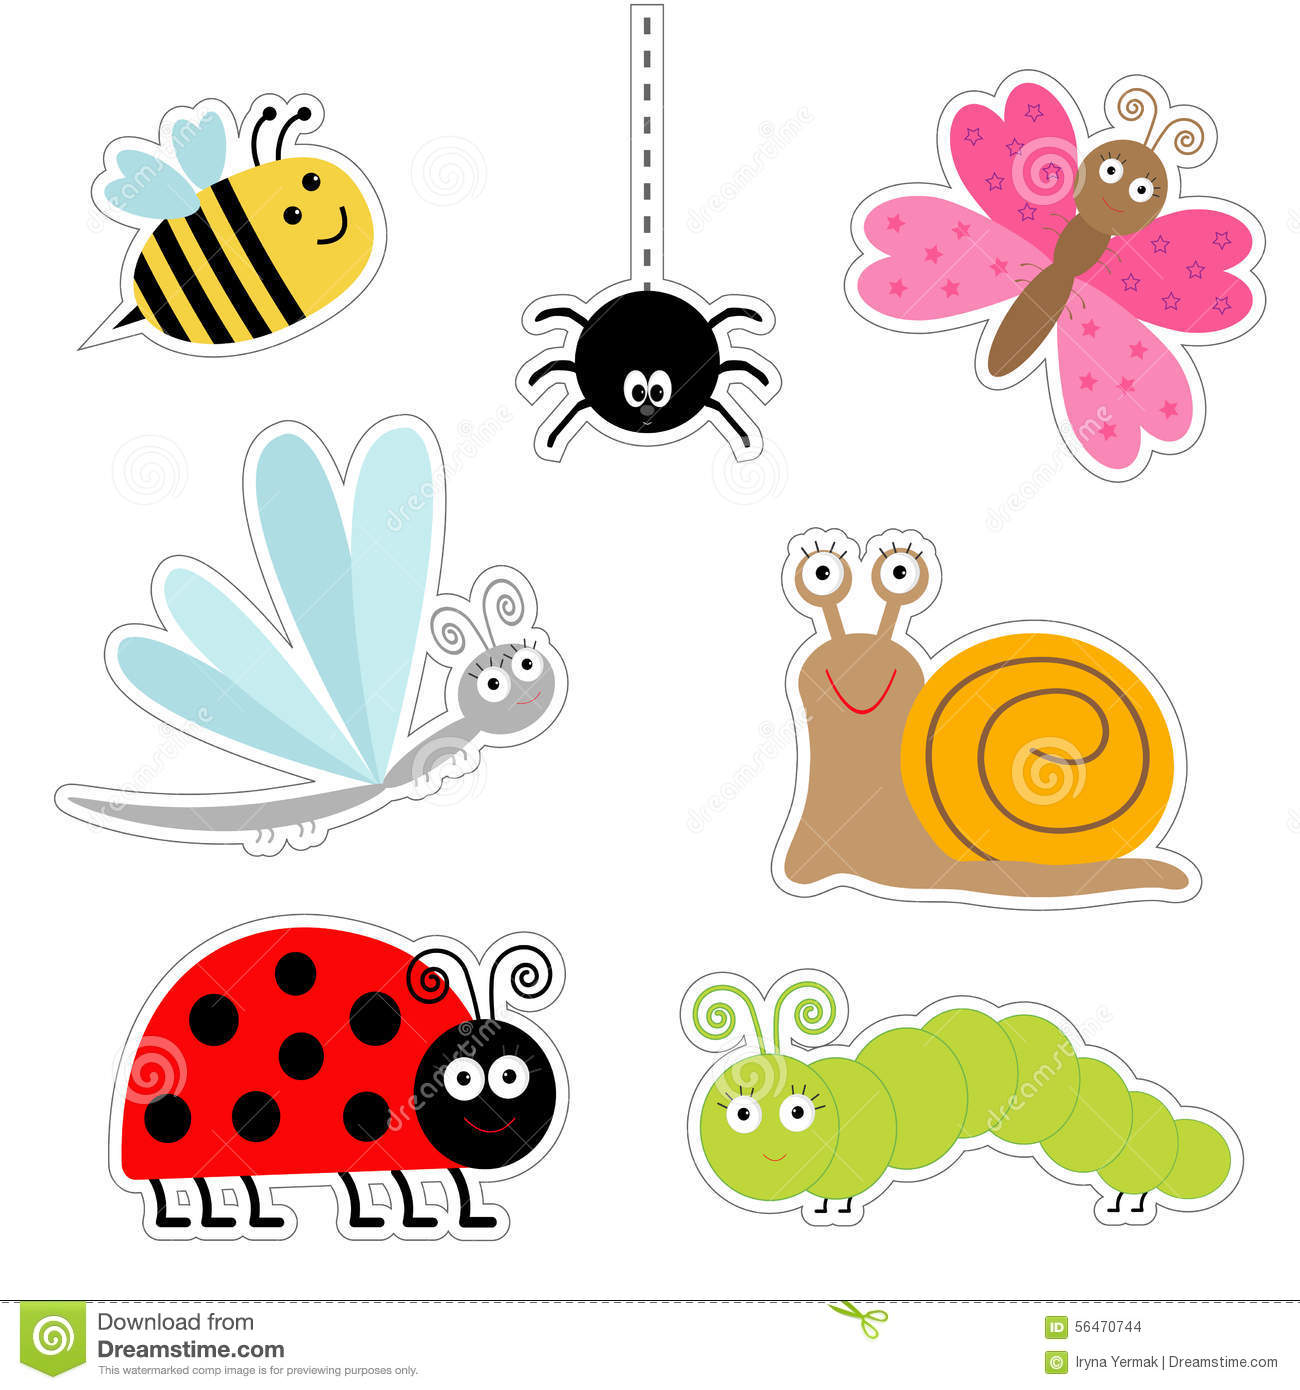 Cute insect drawing - photo#25